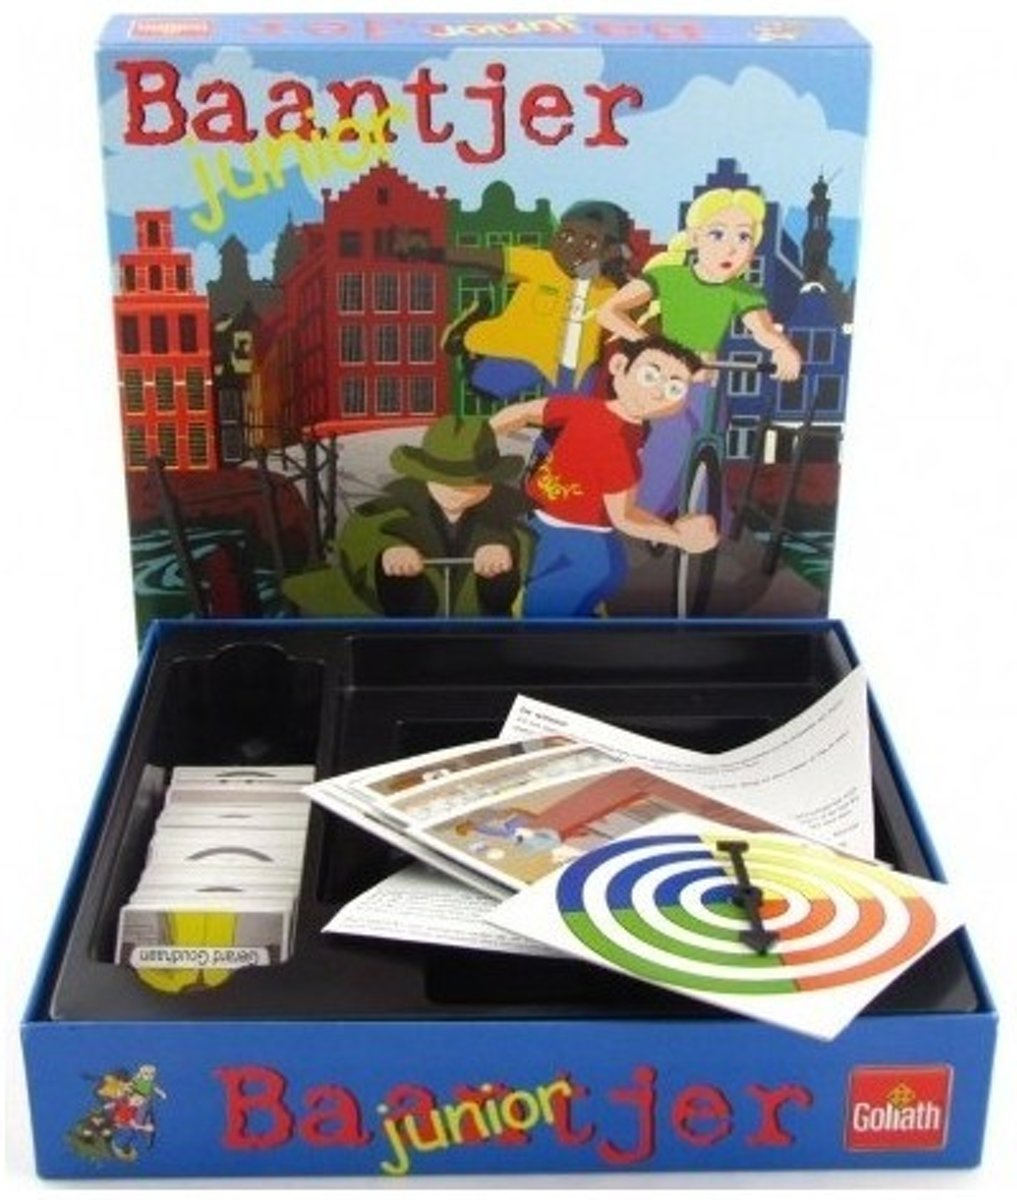 Baantjer Junior bordspel- Goliath-